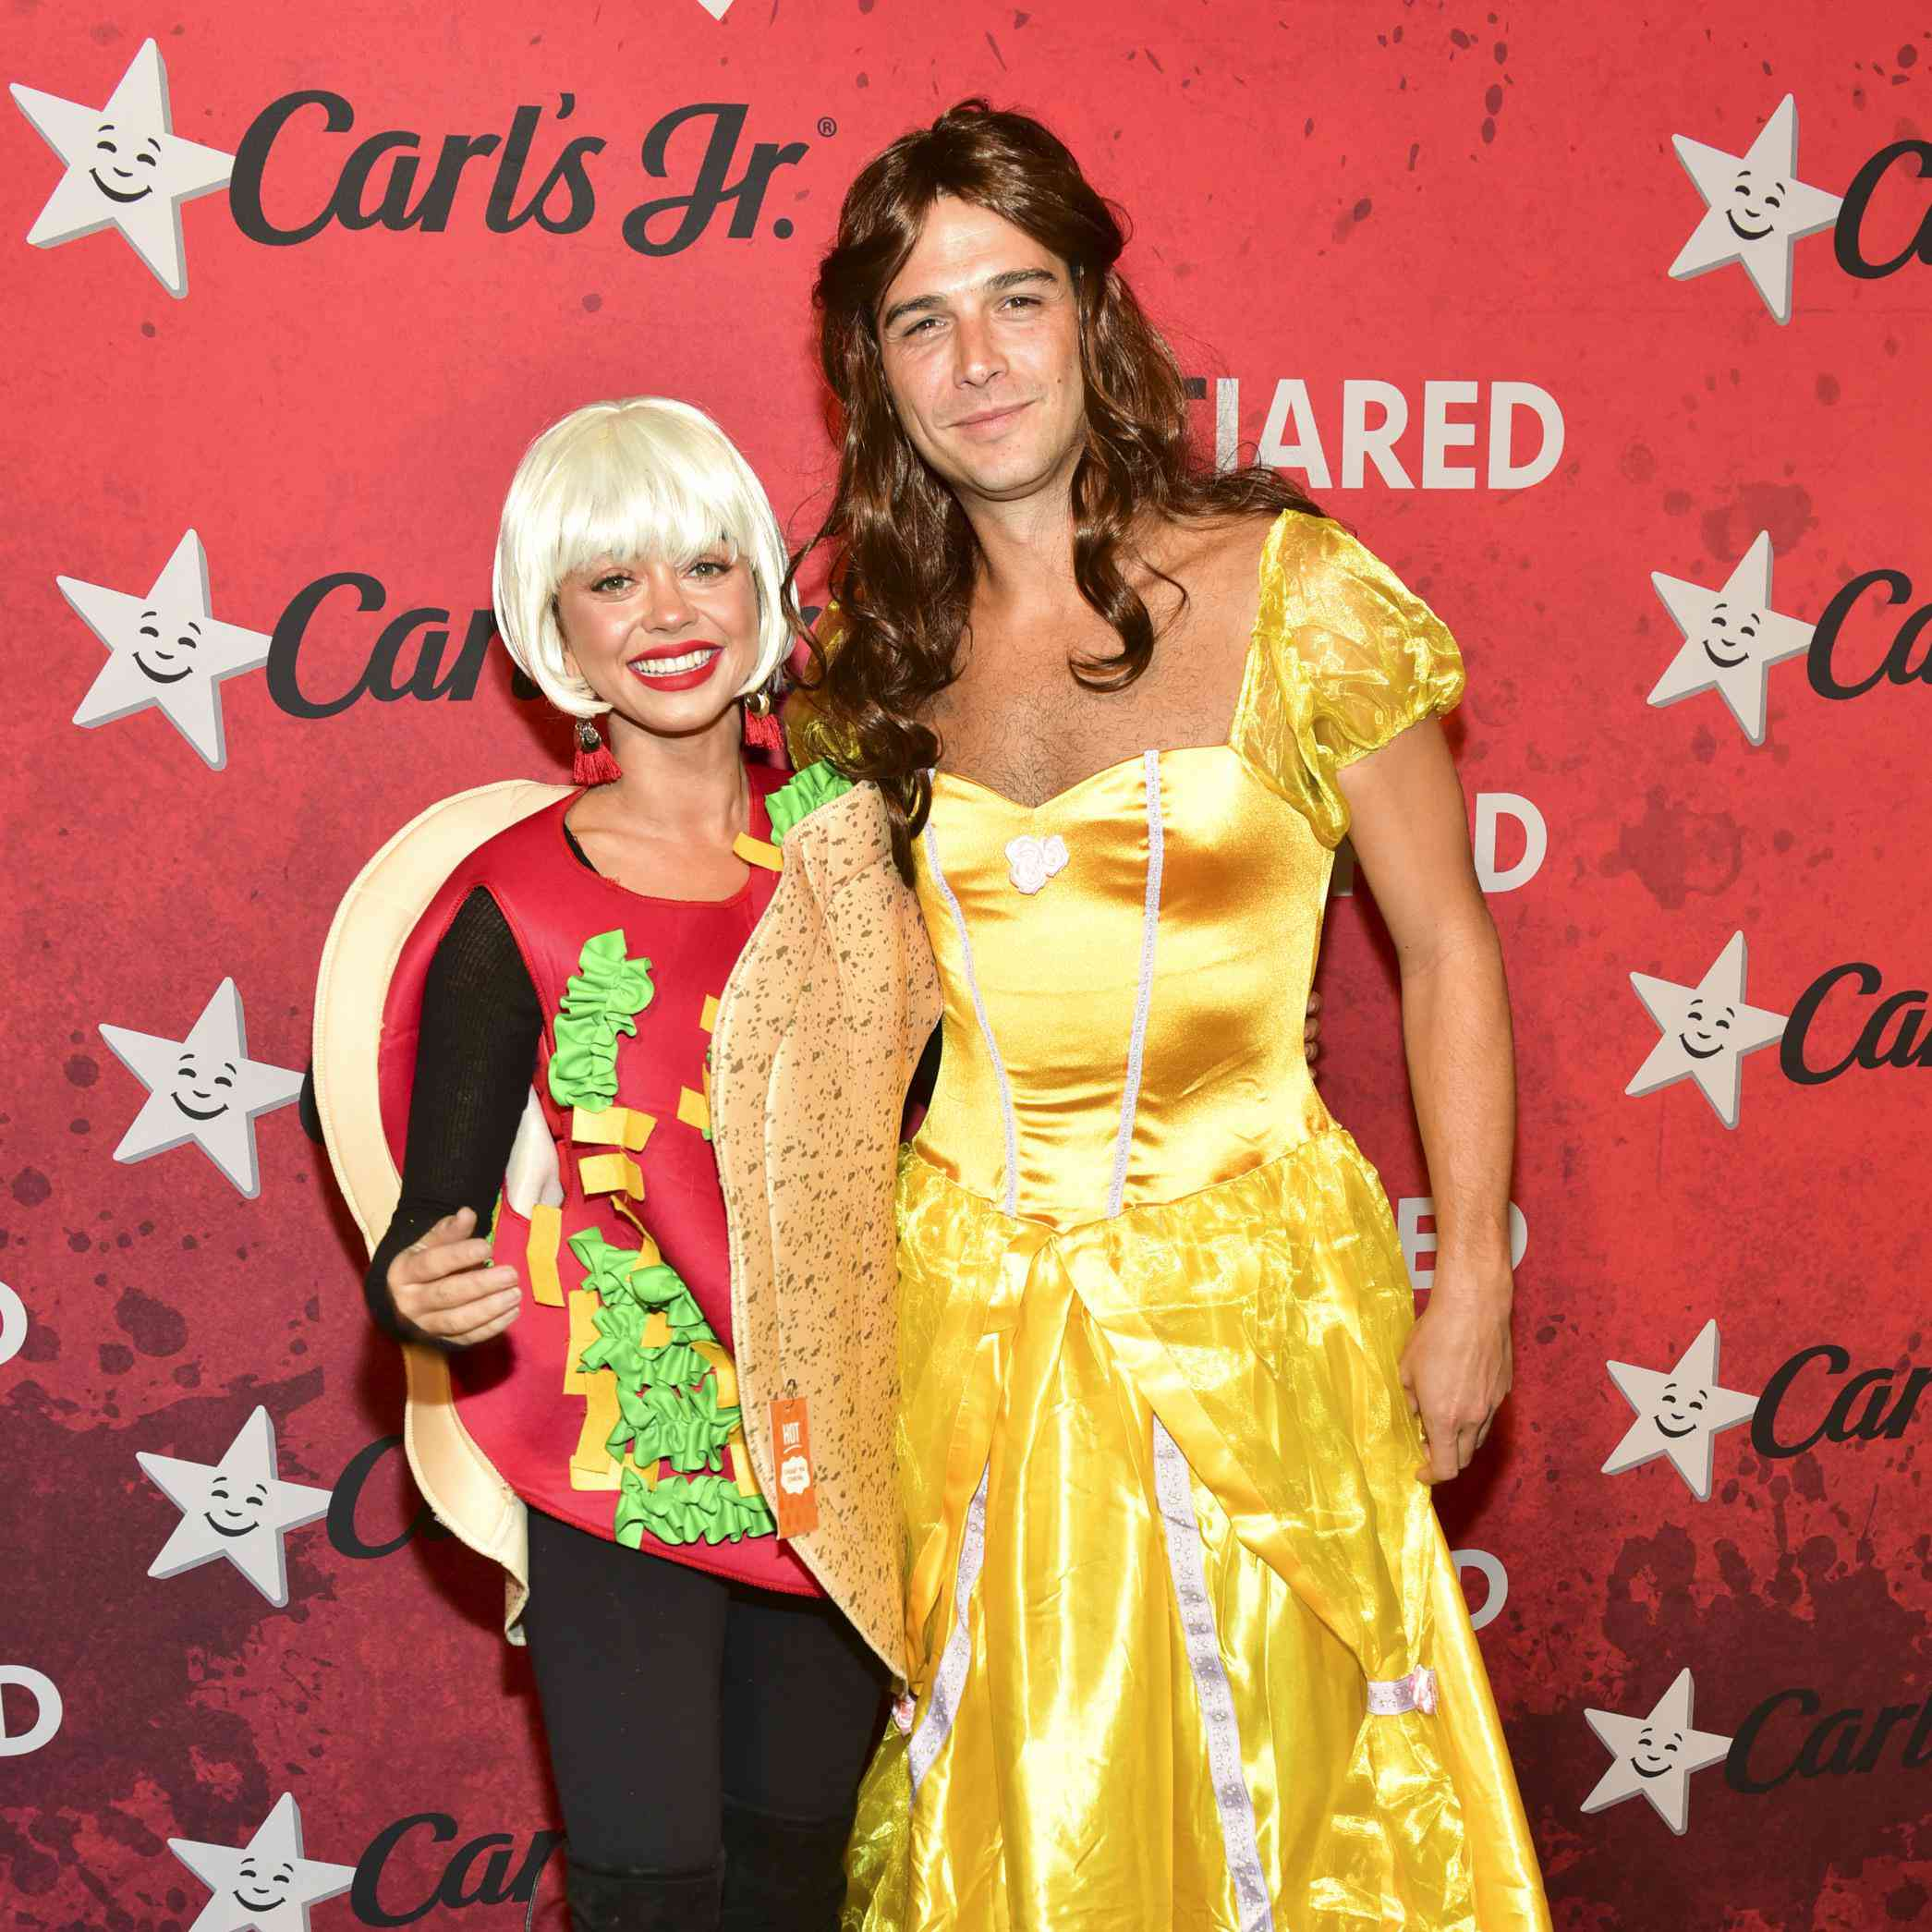 Halloween Bridesmaid Costumes.The Best Celebrity Couples Halloween Costumes Of 2018